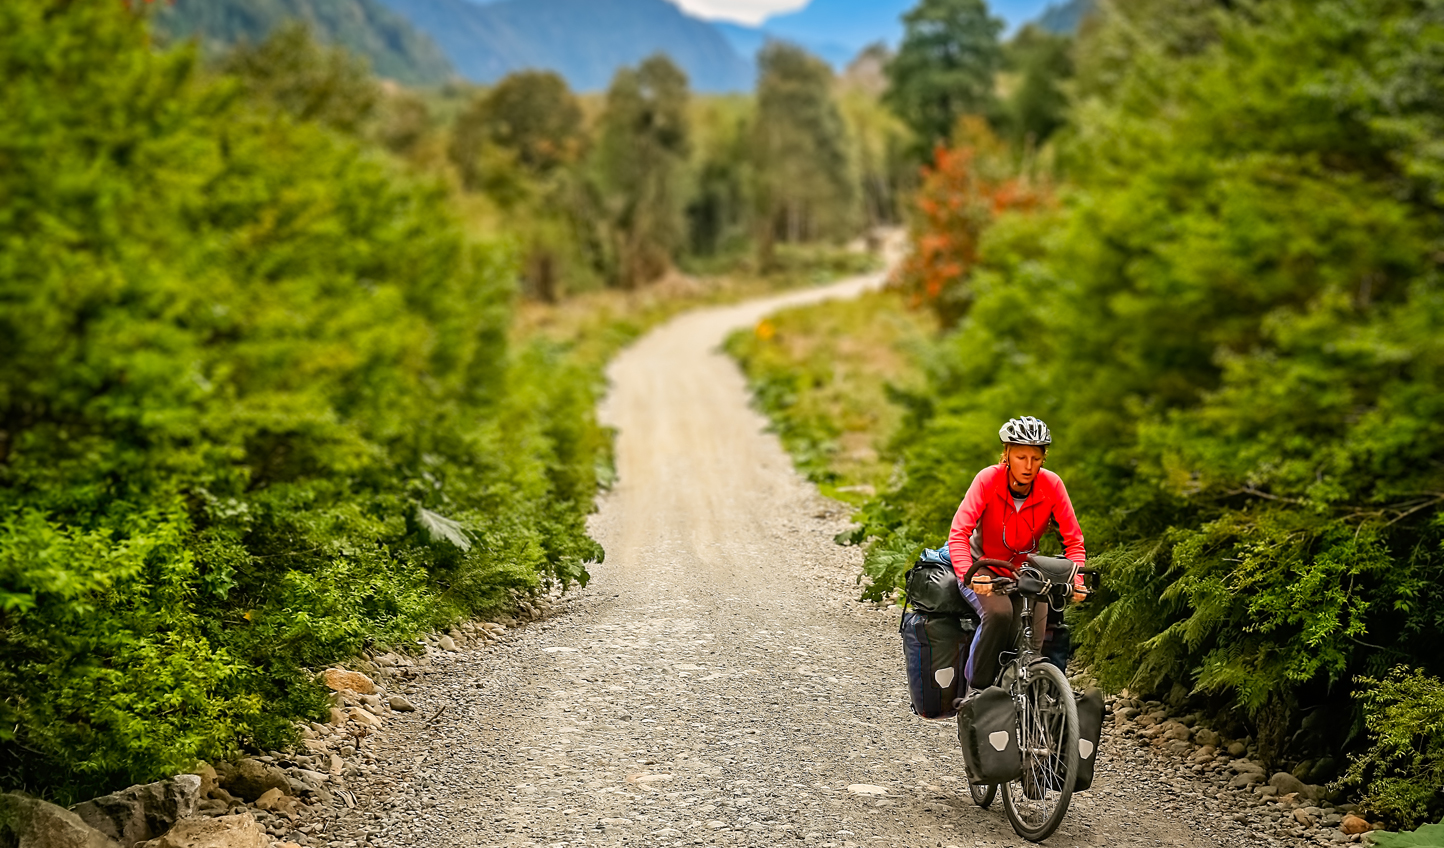 Explore Chile's natural landscapes by bicycle